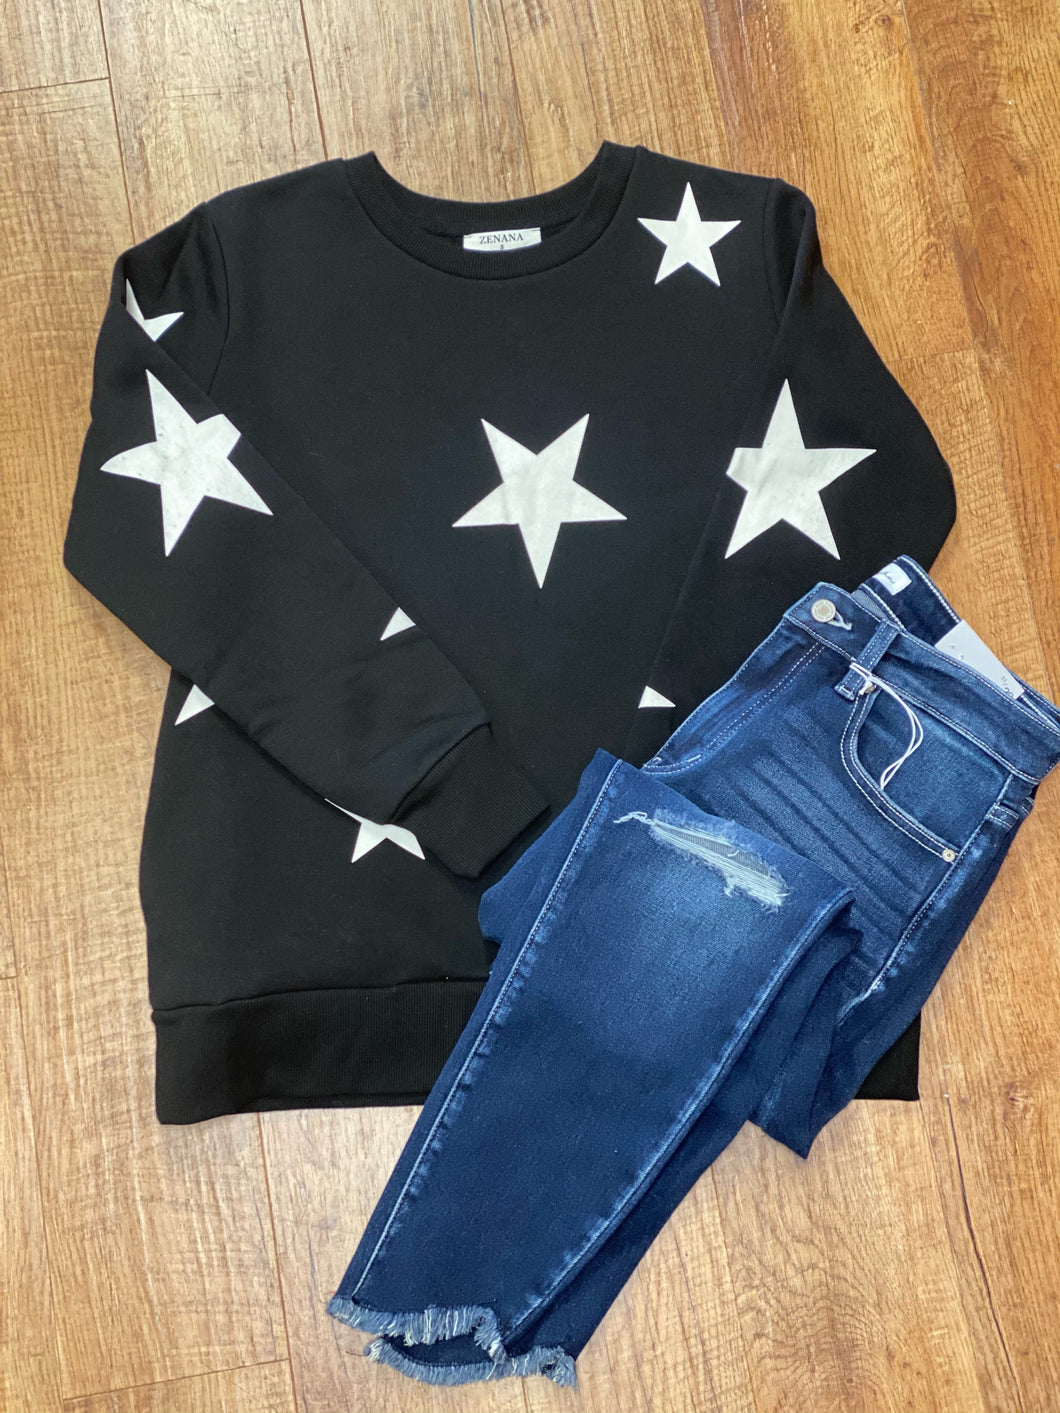 Star Sweatshirt With Side Pockets in Black and Ivory